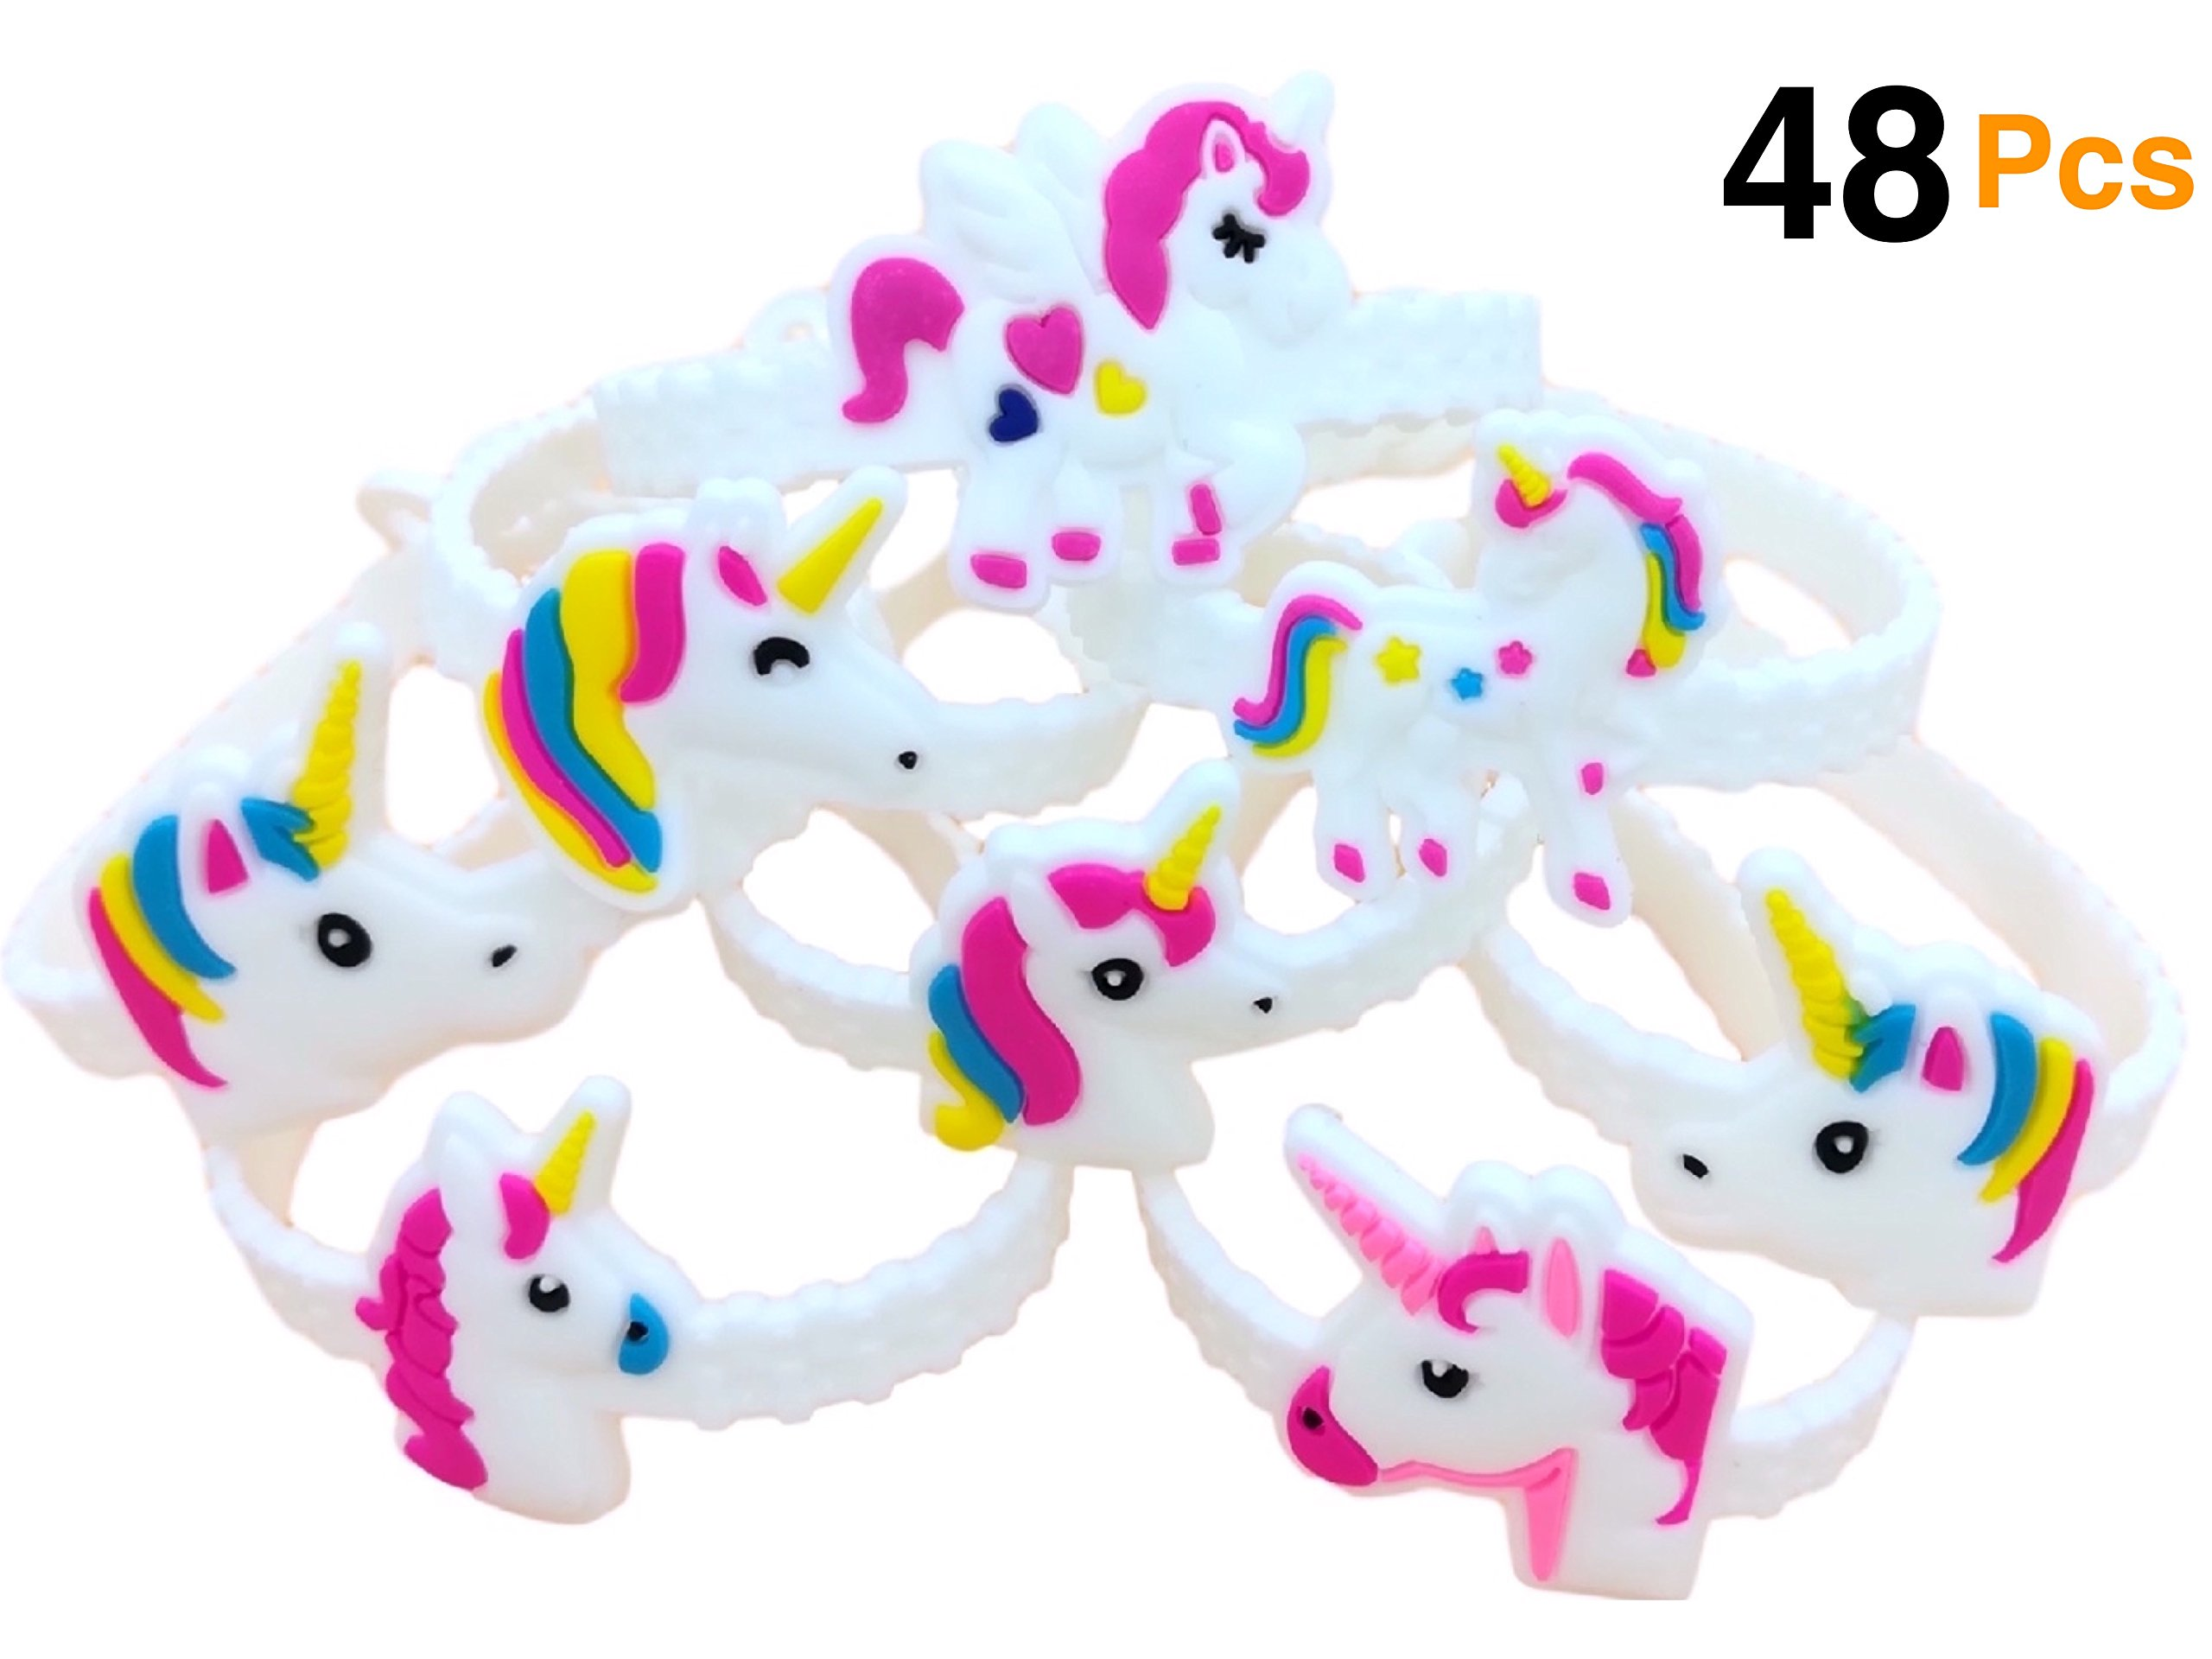 OHill Pack of 48 Unicorn Bracelets Wristbands for Birthday Party Supplies Favors, Novelty Toys and School Classroom Rewards by OHill